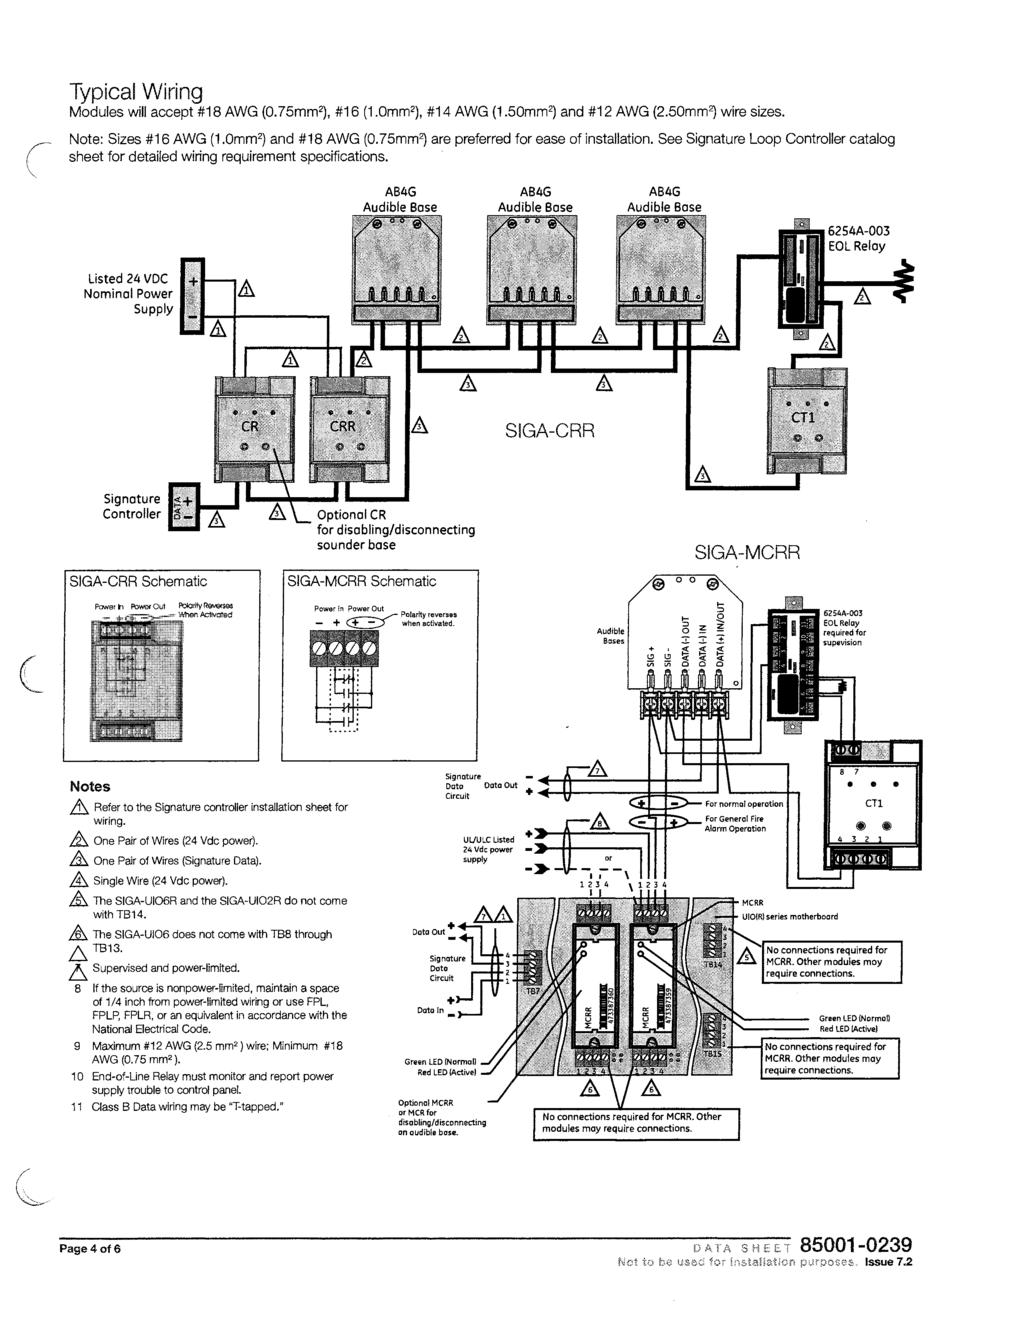 Proposed Fire Alarm I Mass Notification System Pdf Audible Relay Wiring Diagram Typical Modules Will Accept 18 Awg 0 75mm2